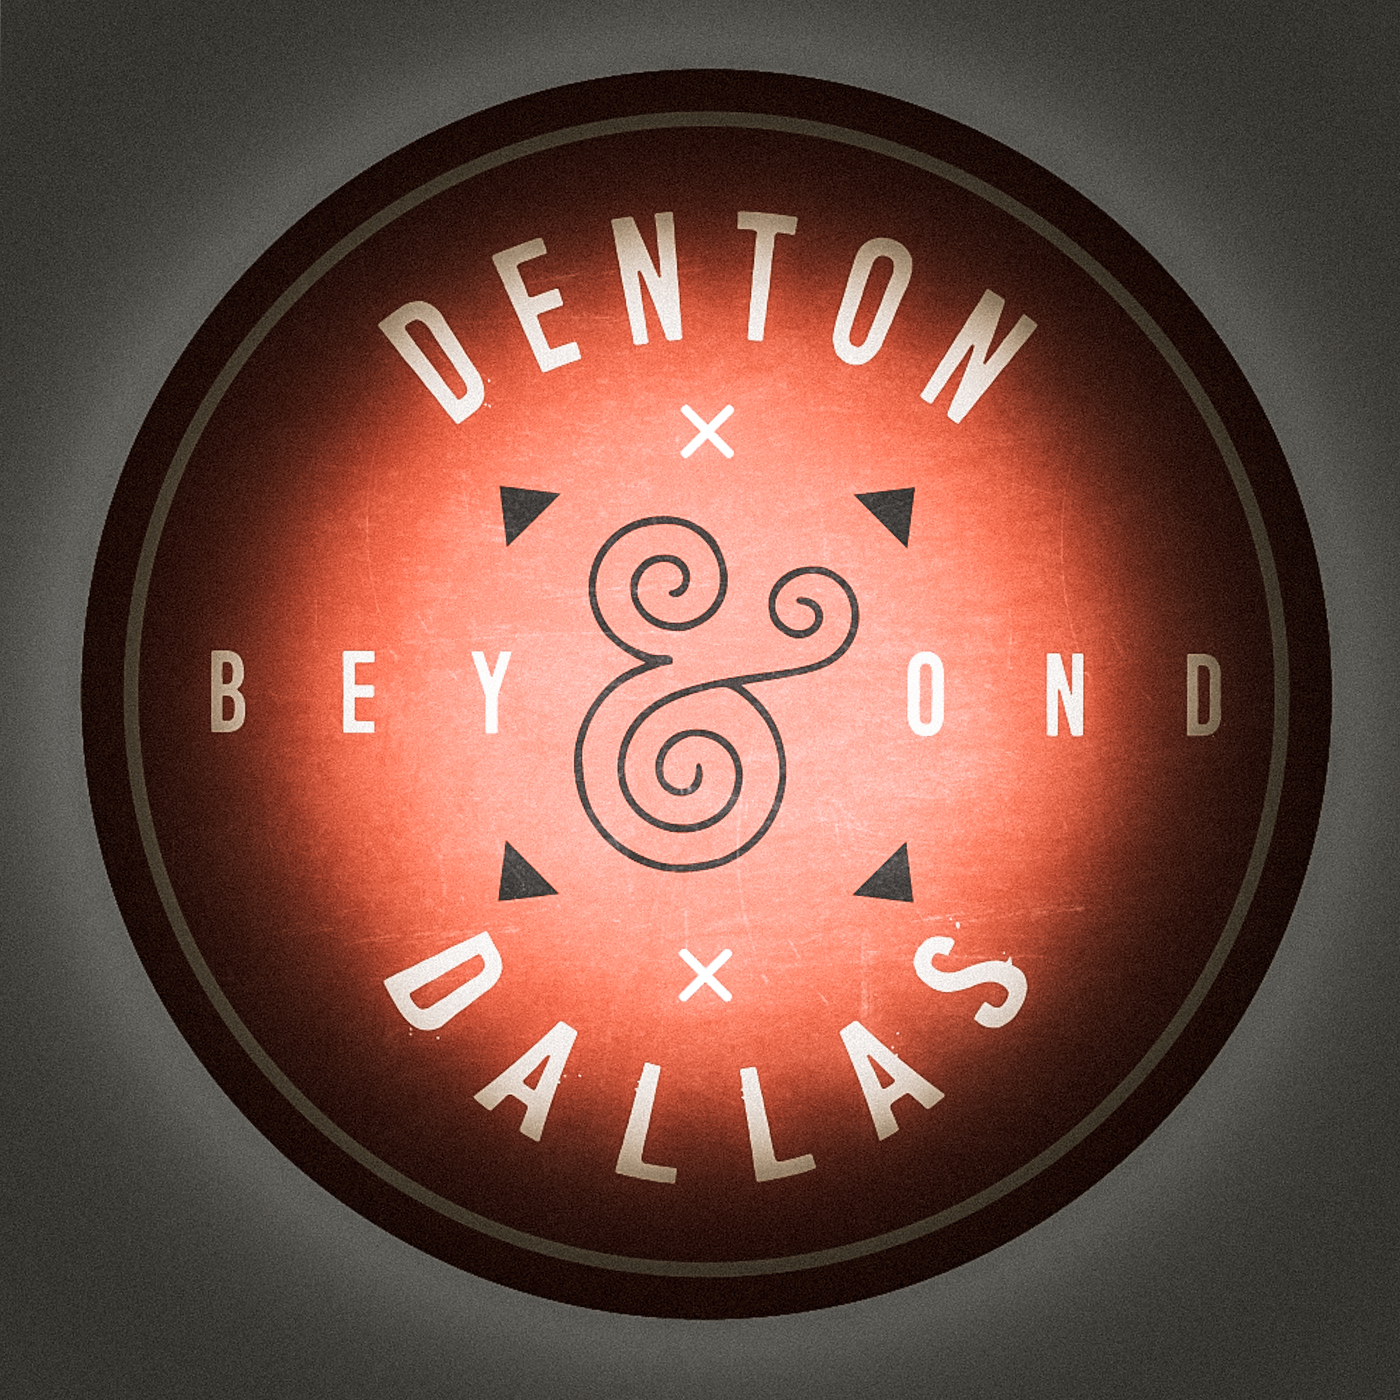 Denton Dallas and Beyond | A travel and resource podcast